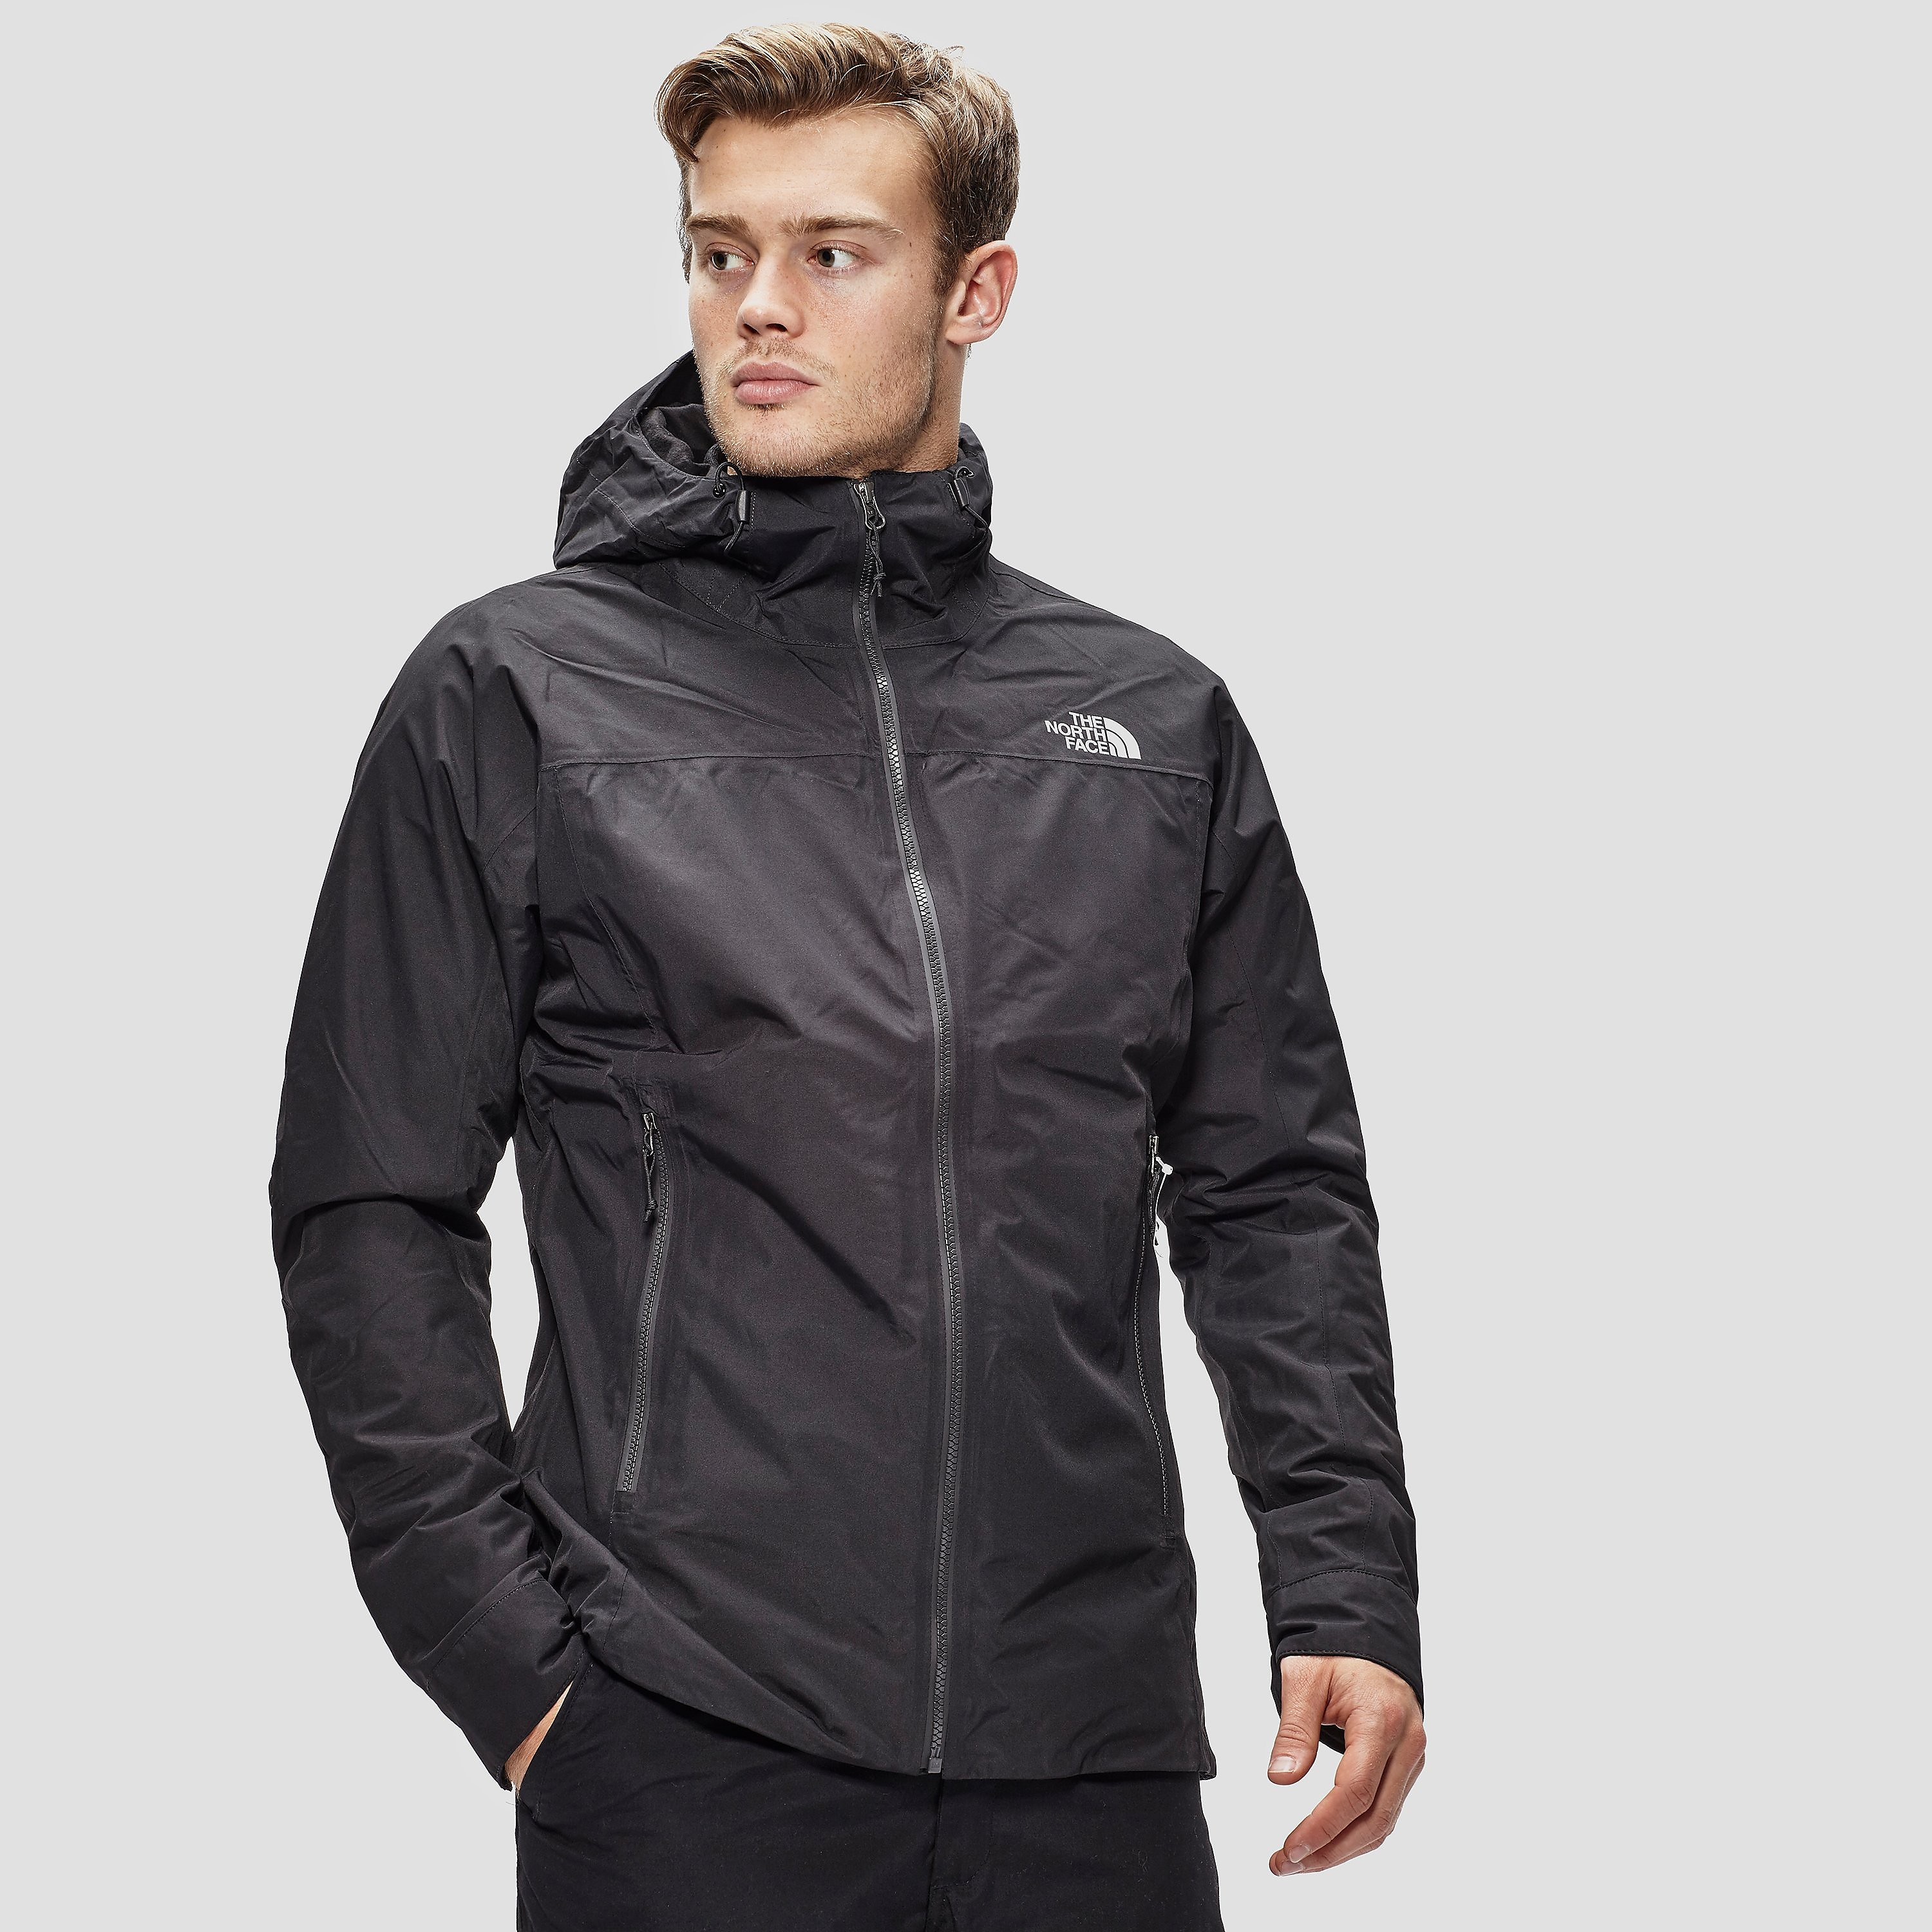 The North Face Men's Meaford Triclimate Jacket is a 3-in-1 Jacket